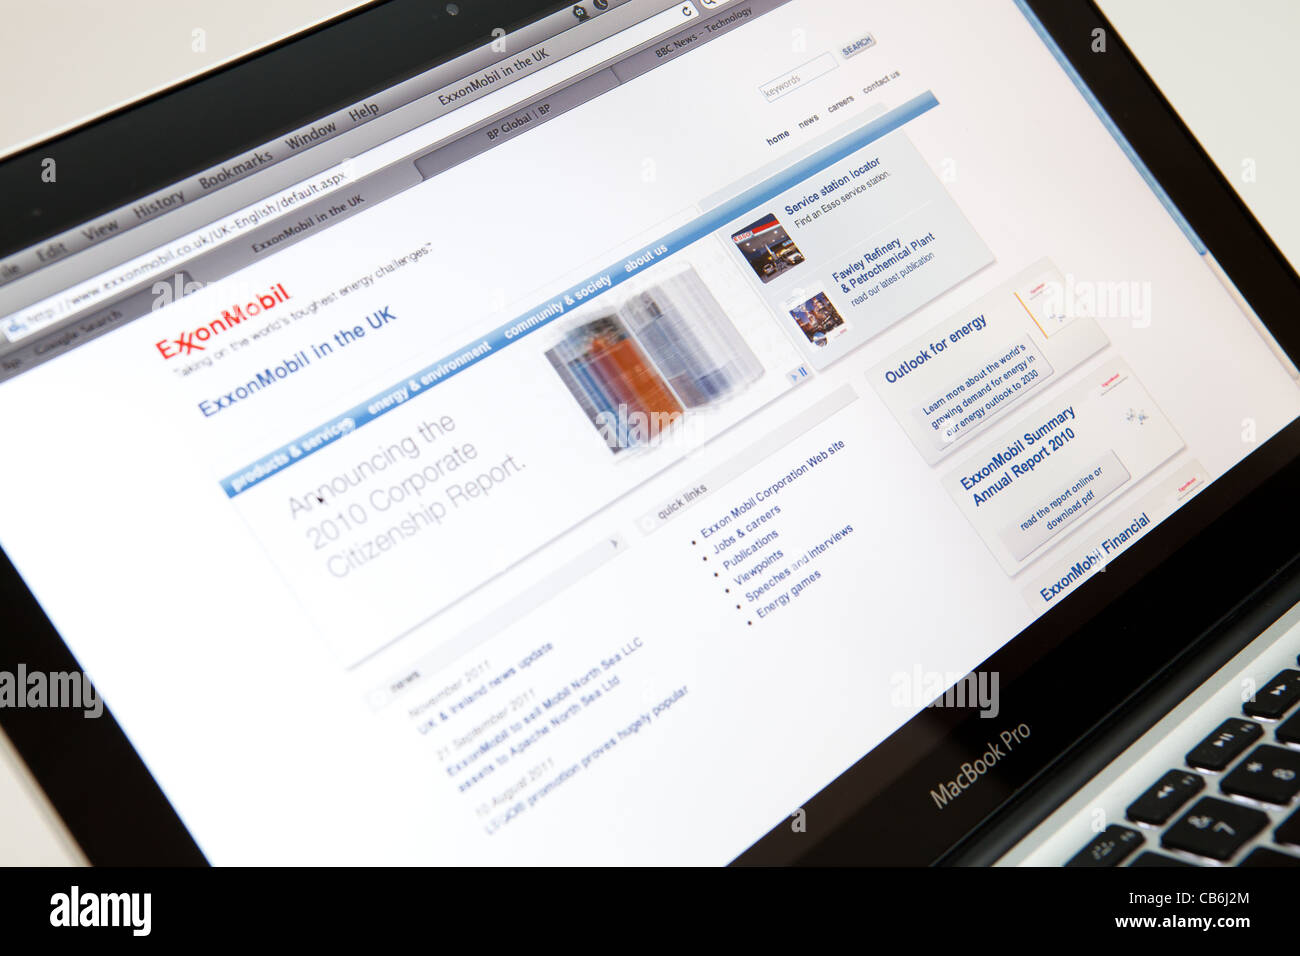 Exxon Mobil Corporation Website Screen shot of web page - Stock Image